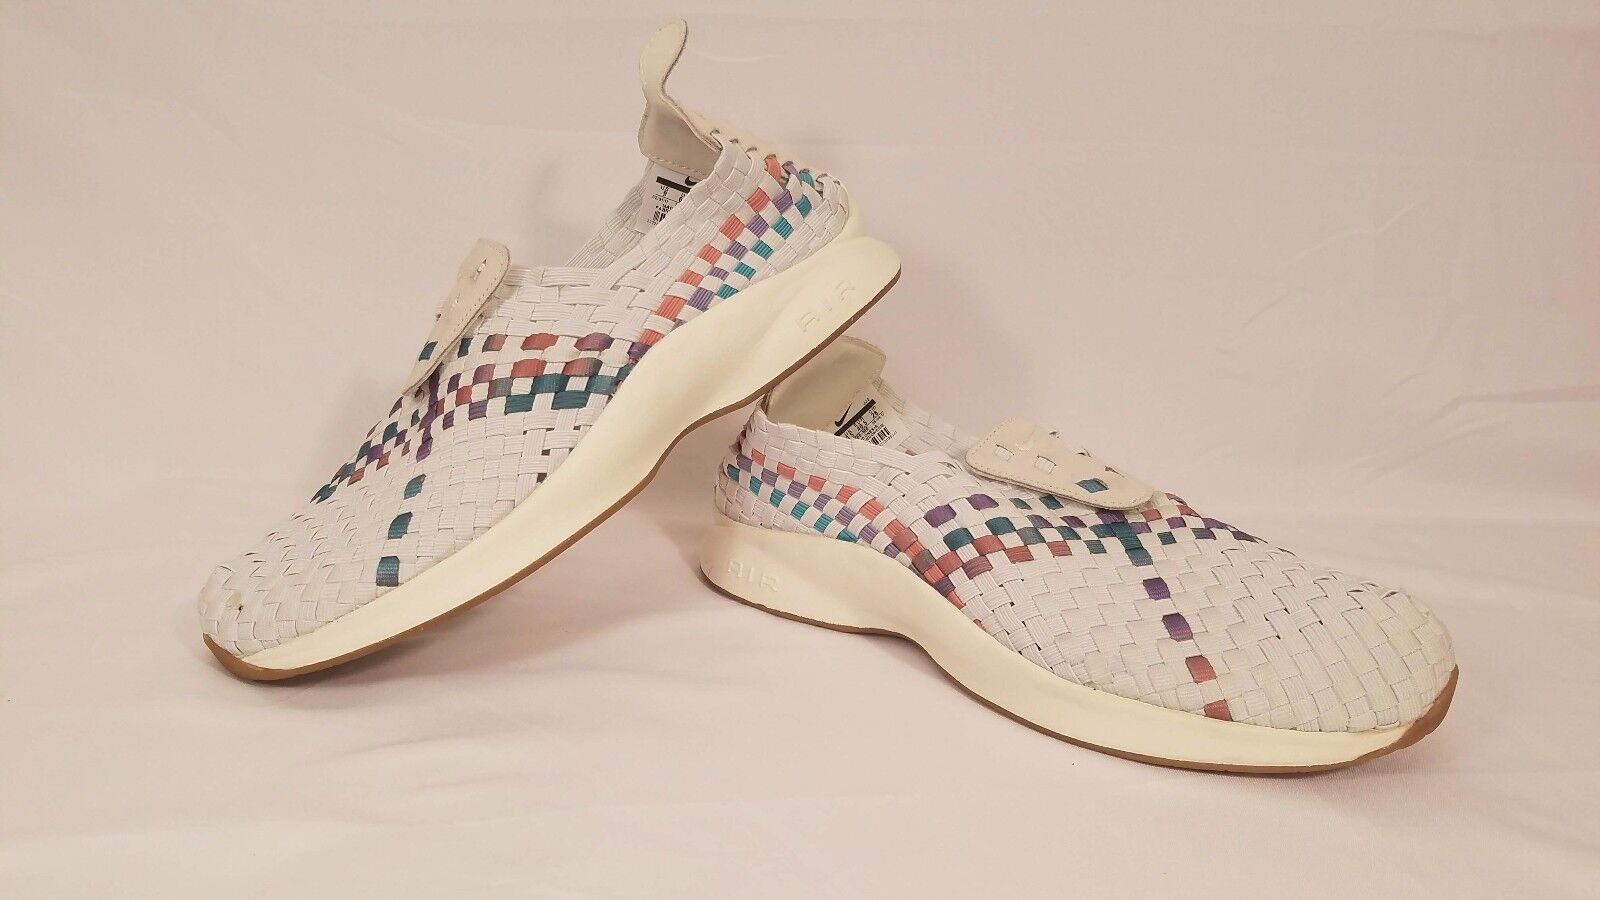 Nike Air Woven Sail, White, Red, Orchid Mist Running Shoes 302350-100 Size 9